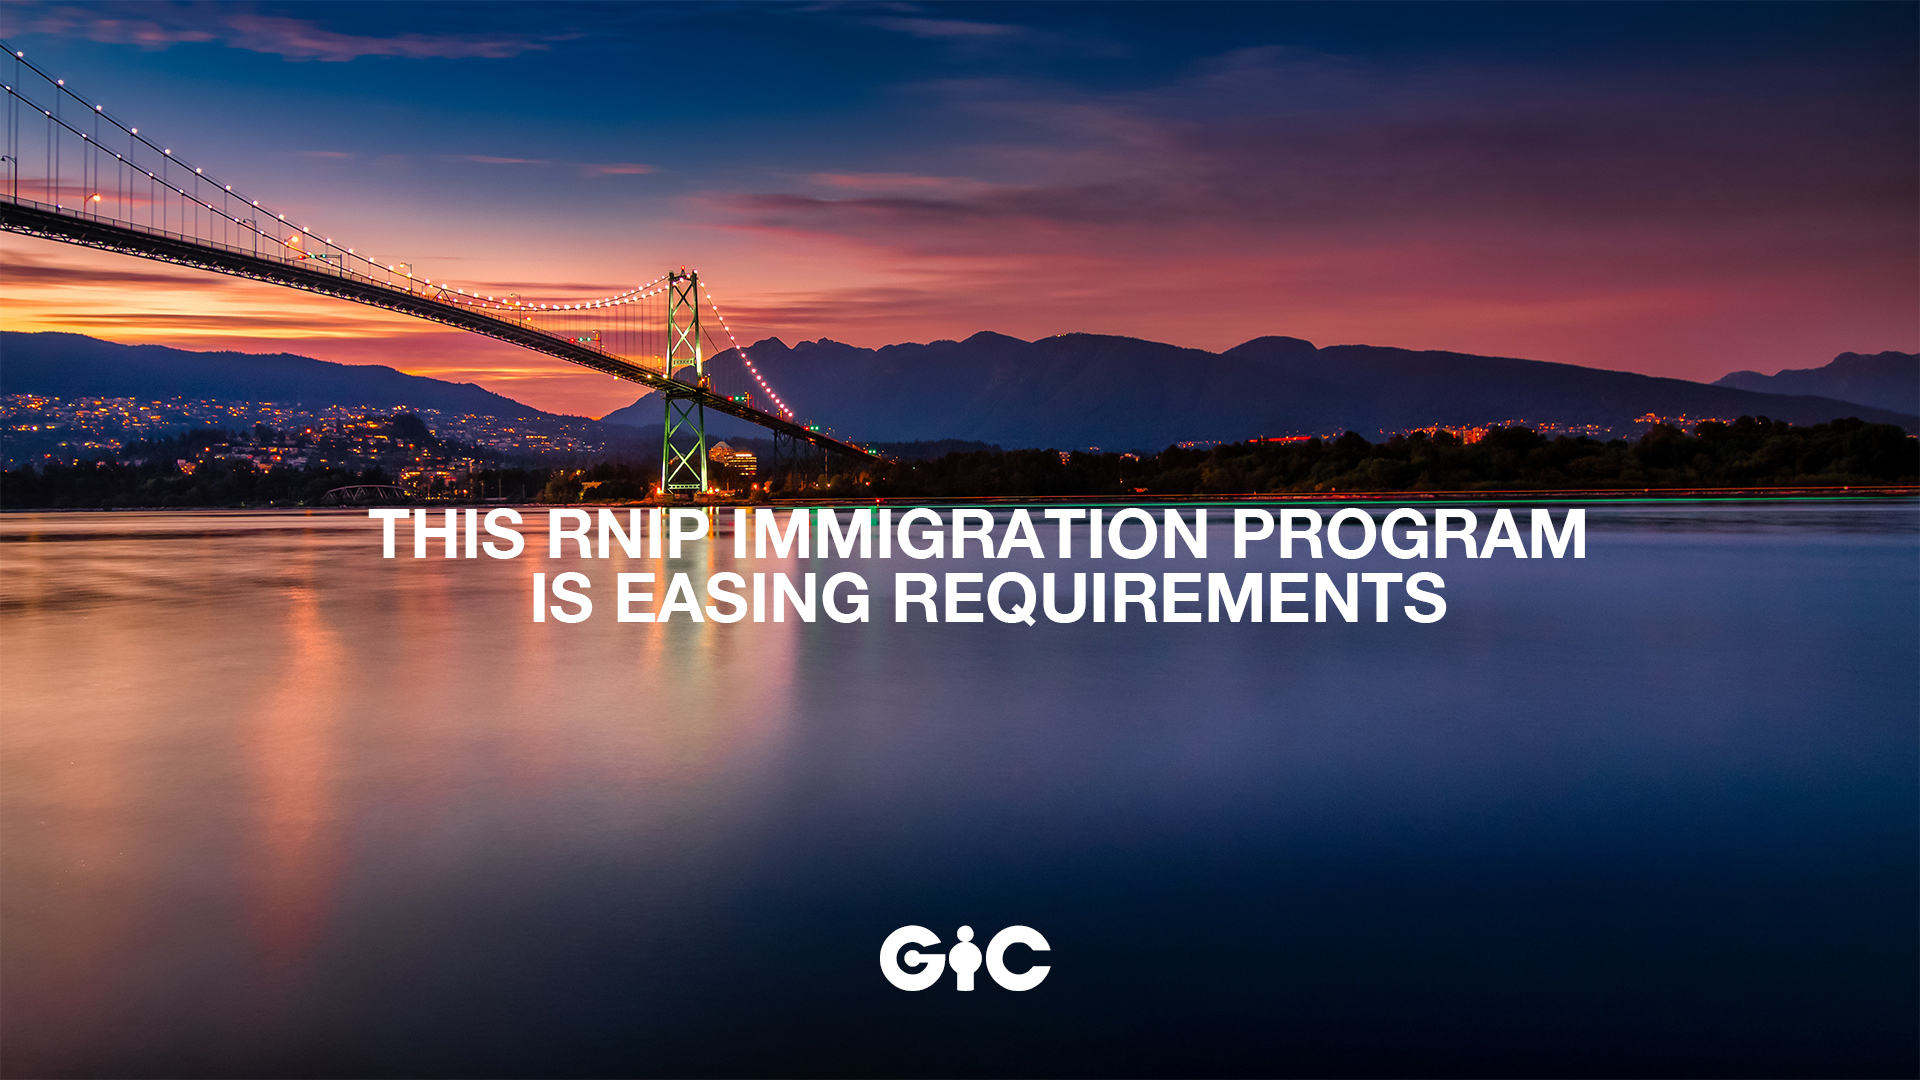 This RNIP immigration program is easing requirements